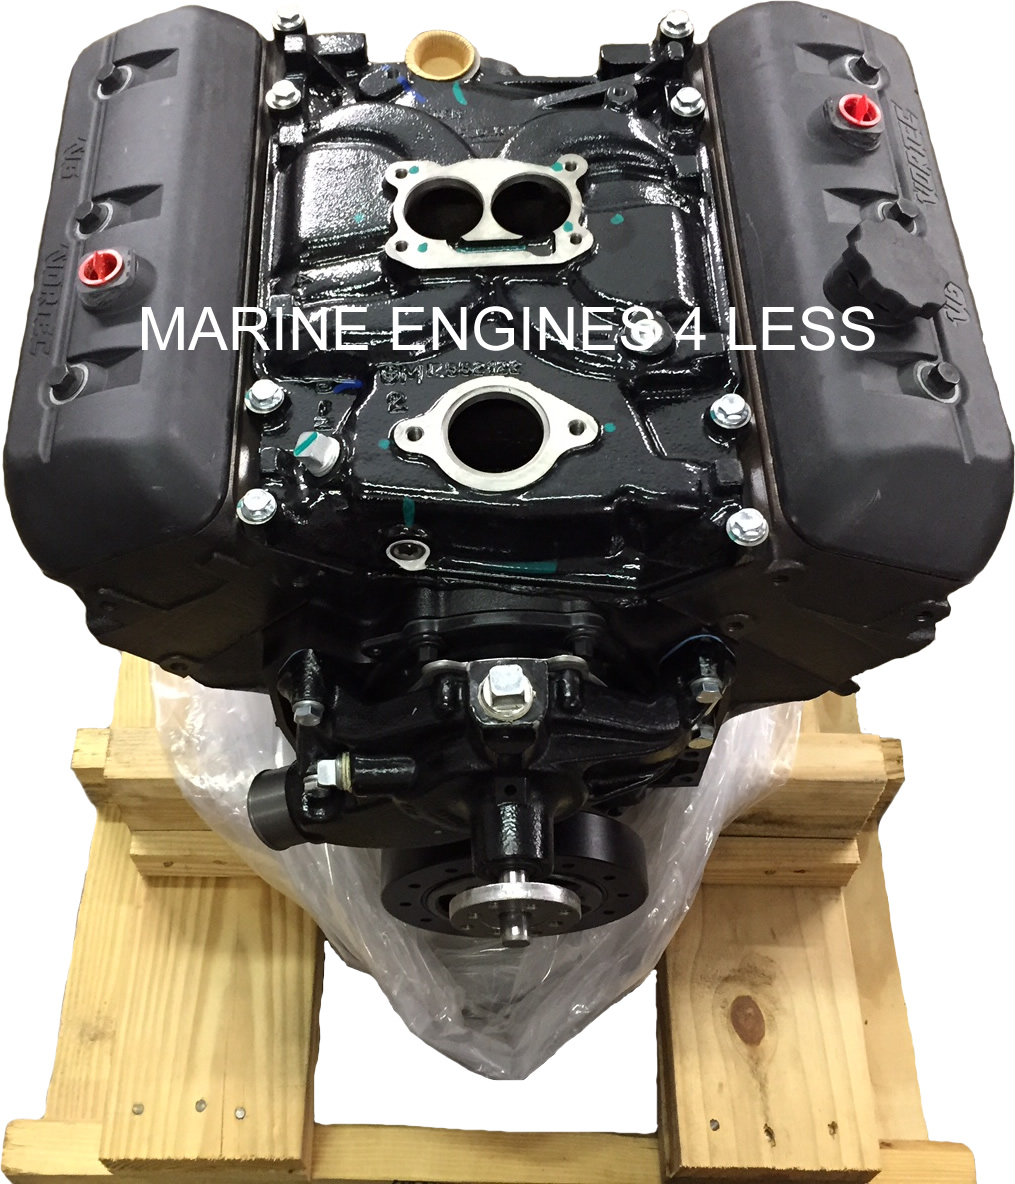 Engine Intake Manifold : Remanufactured marine engines l